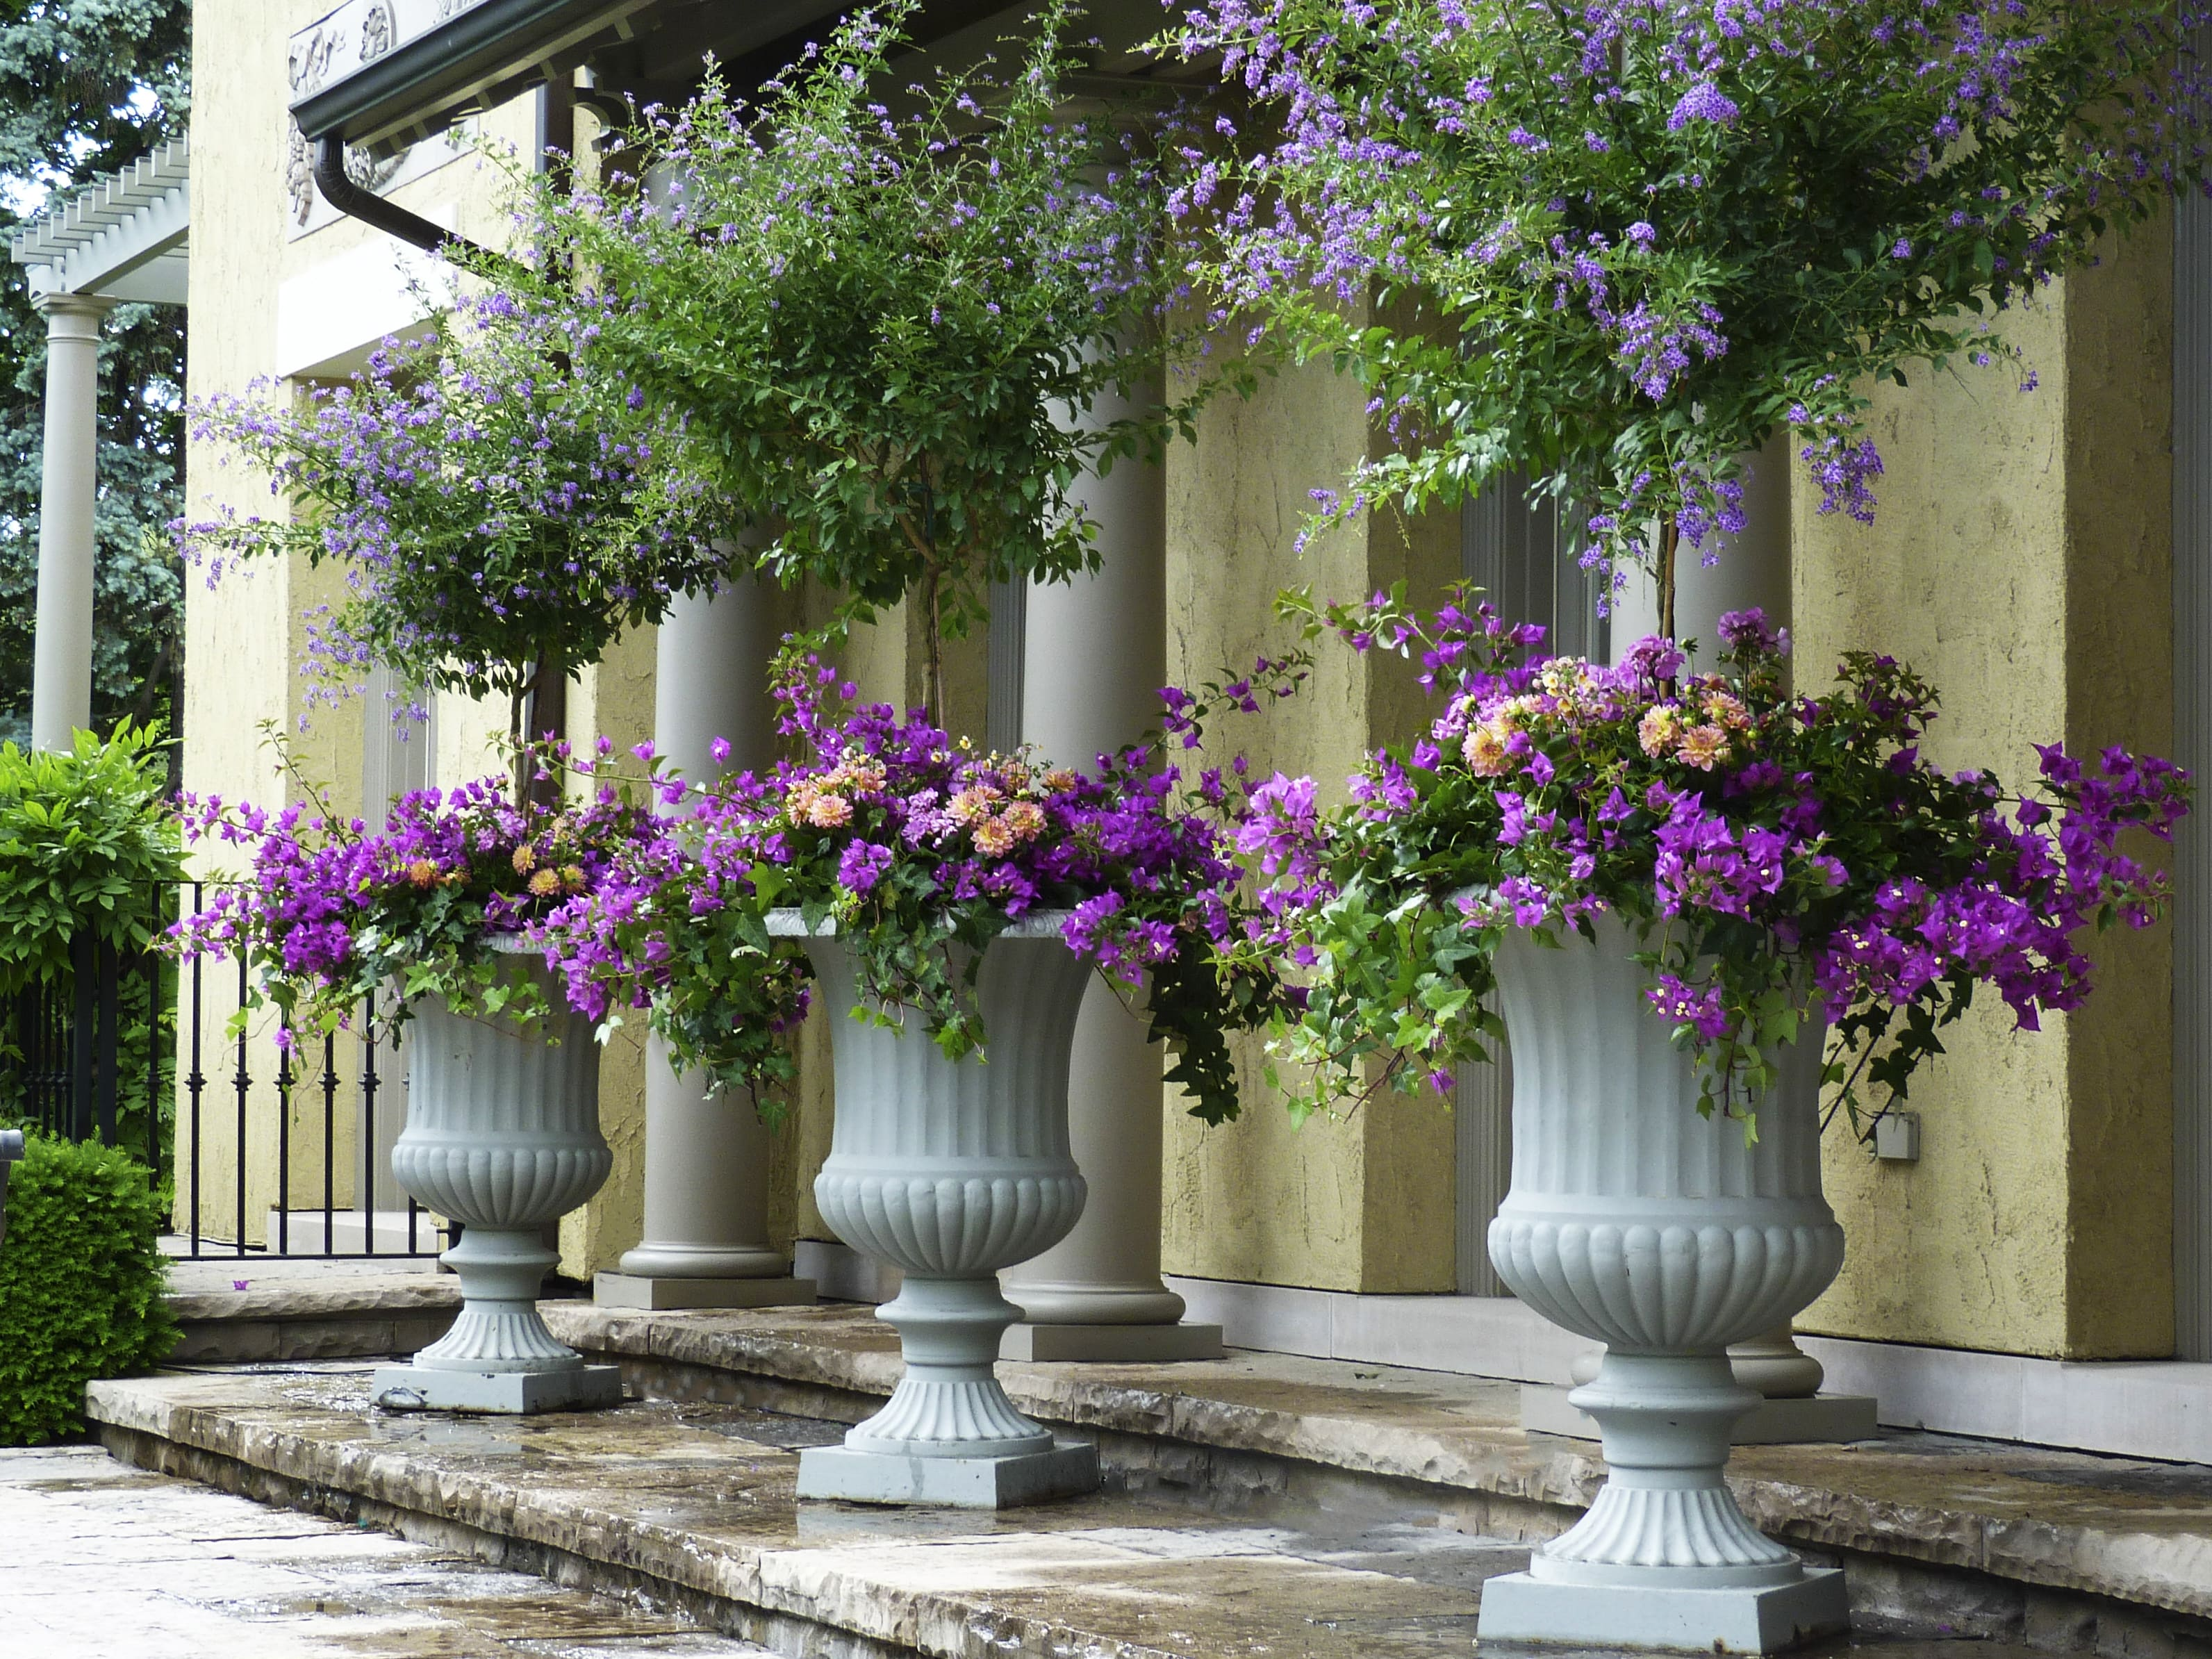 Service: containers. Purple flowers in large white contianers